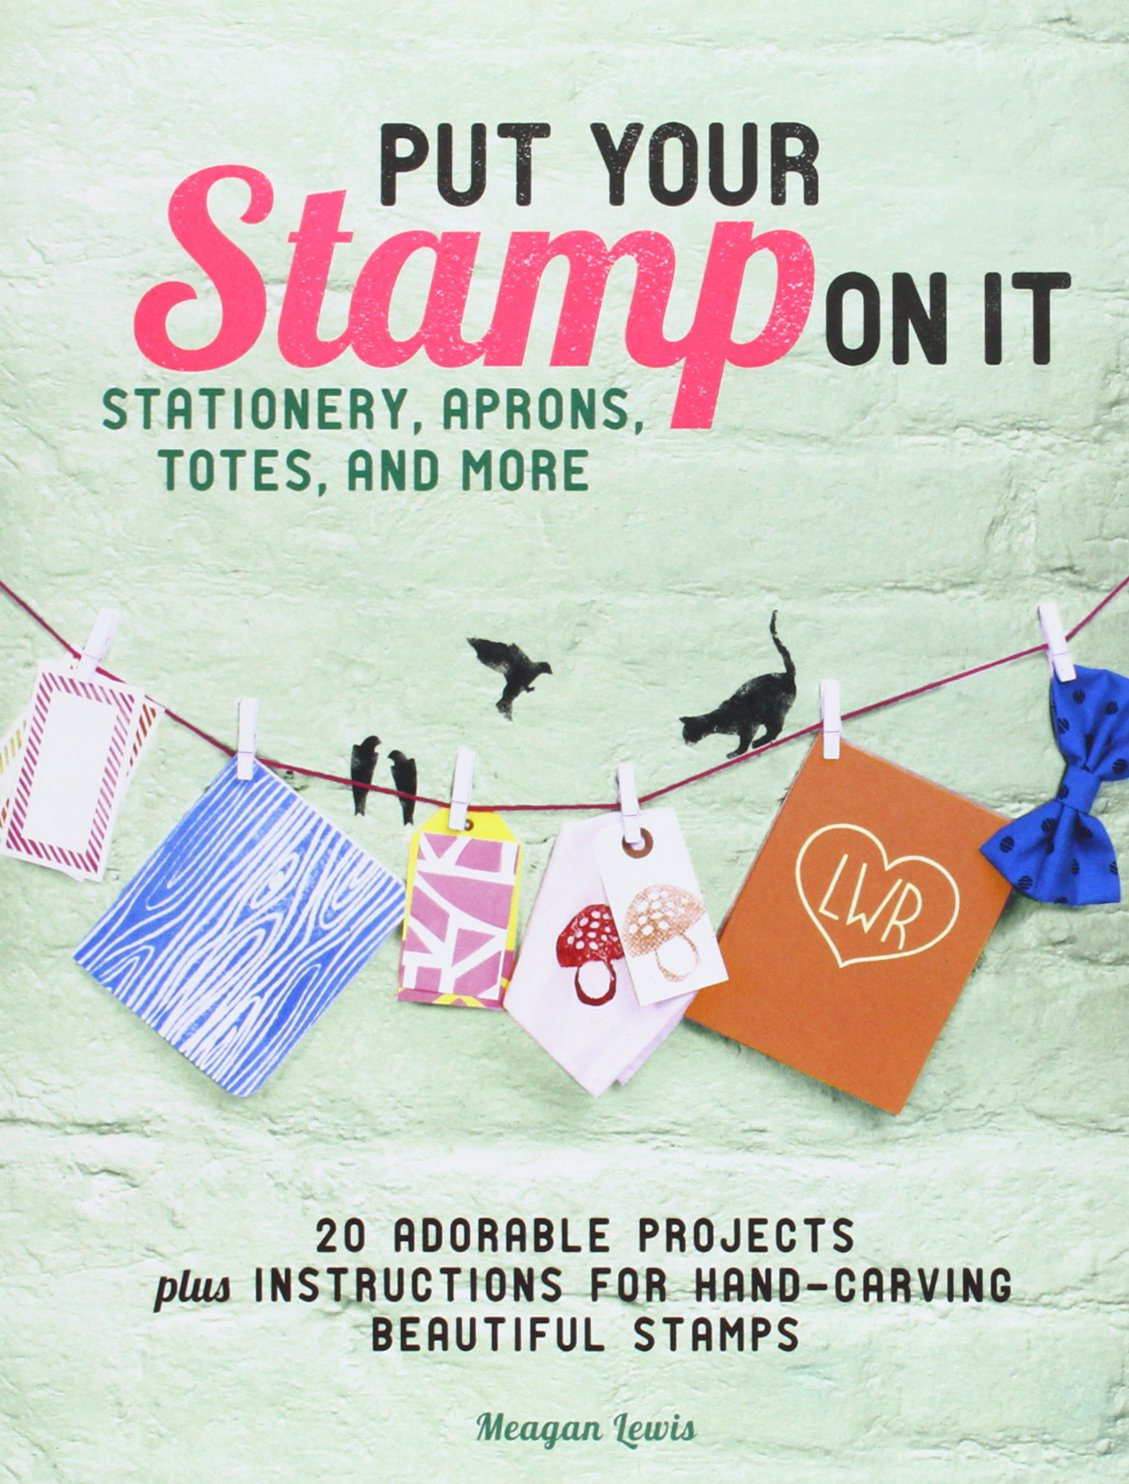 Put Your Stamp on It: 20 Adorable Projects, Plus Instructions for Hand-Carving Beautiful Stamps